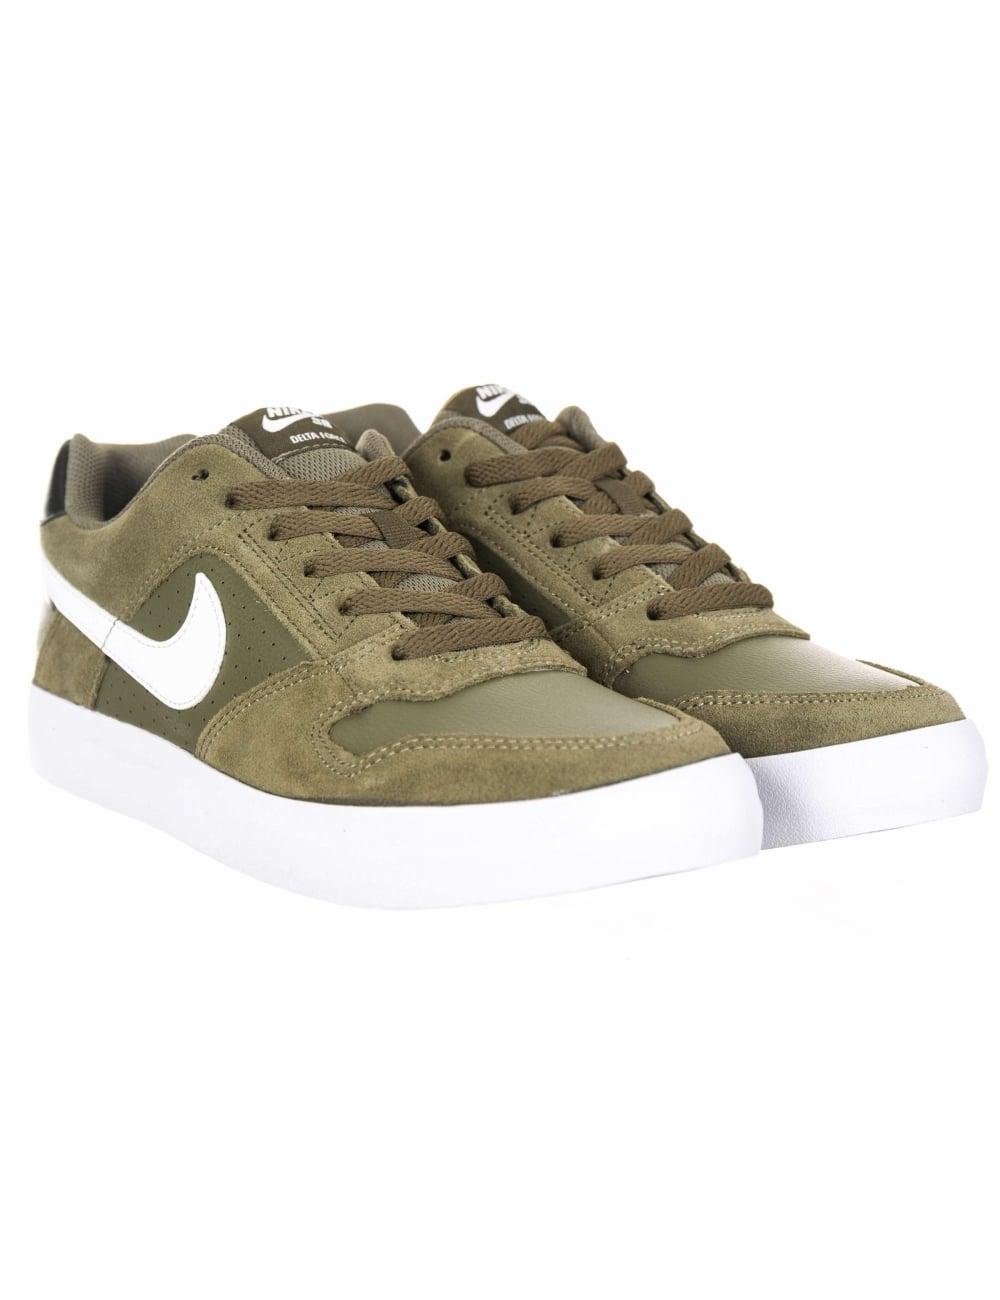 26b5b714cf2d Nike SB Delta Force Vulc Trainers - Olive White - Footwear from Fat ...